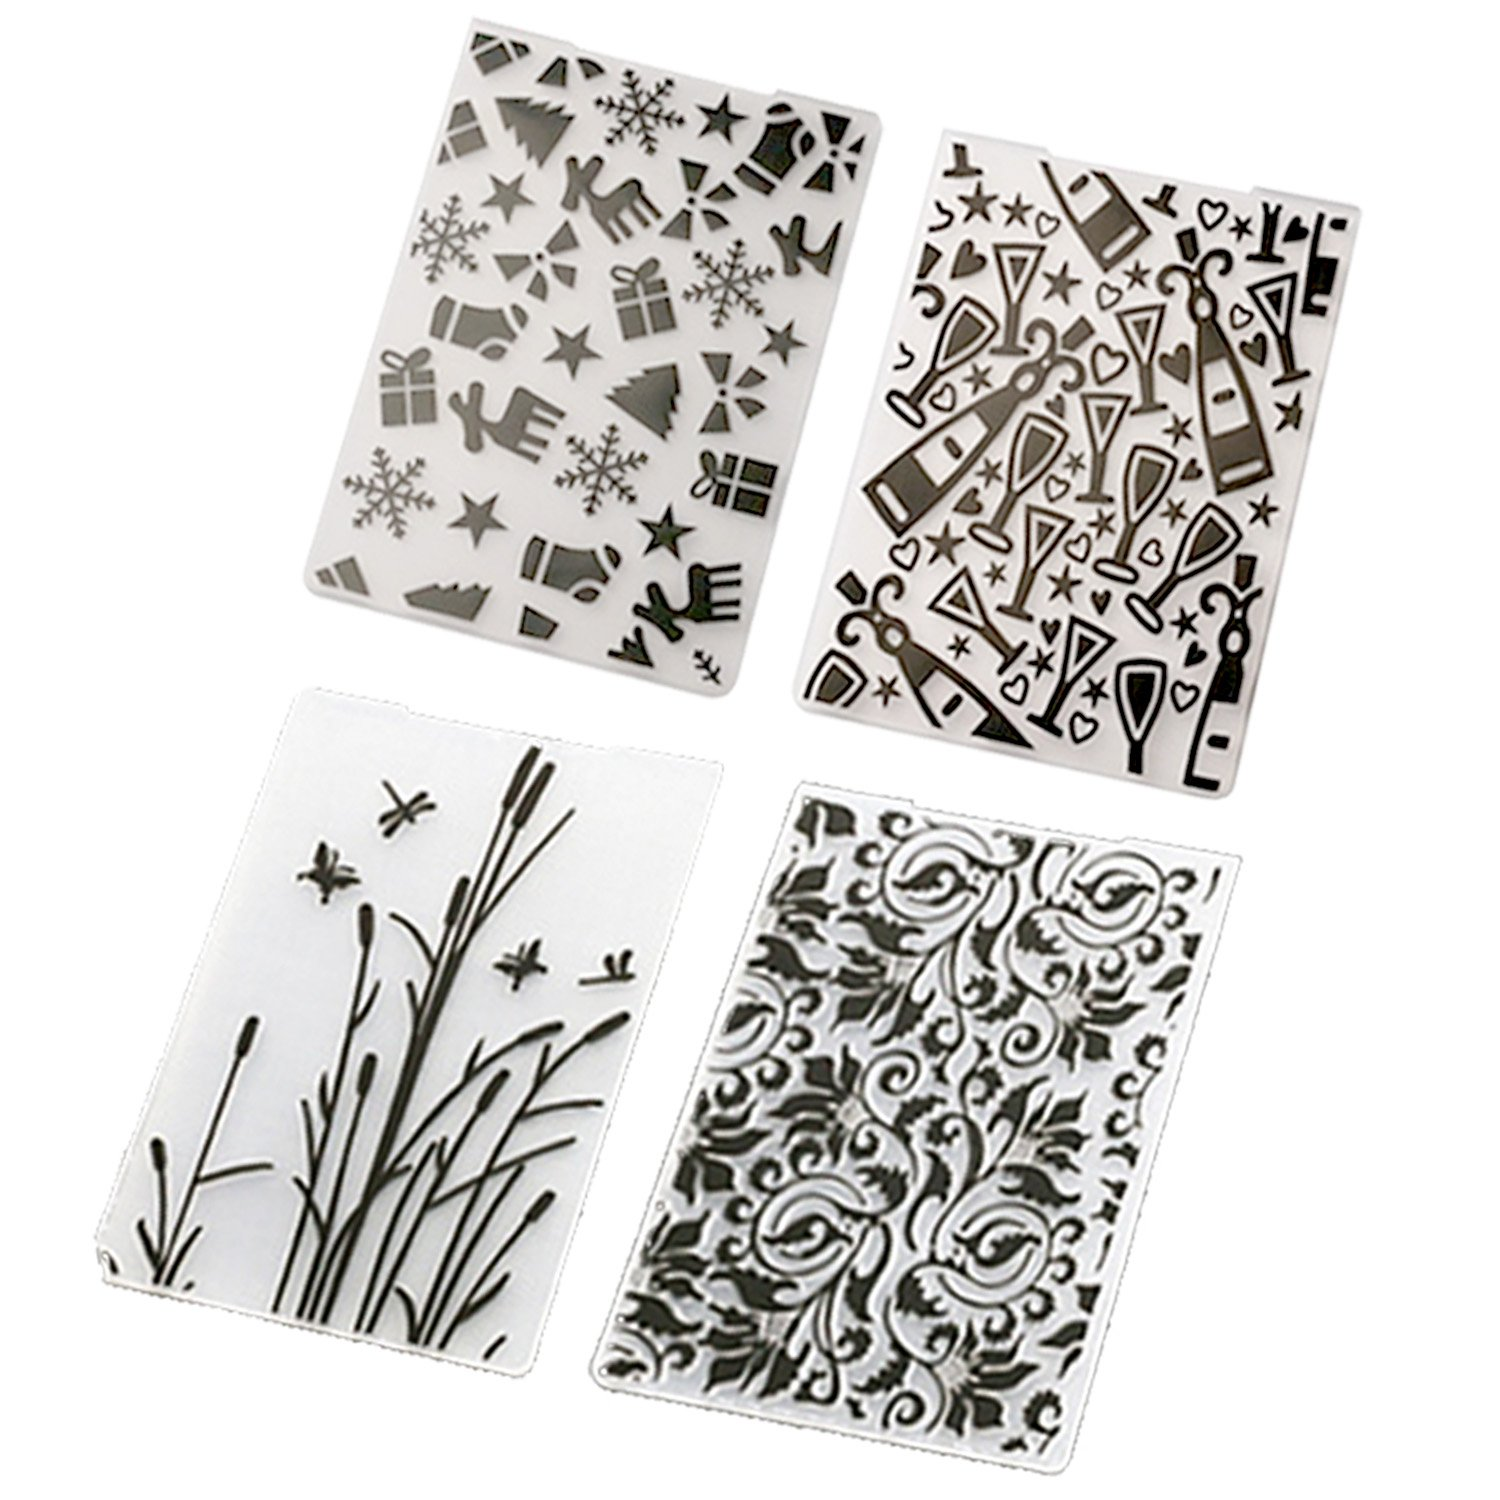 Migavan Embossing Folder,4 Assorted Patterns Embossing Folder Plastic Templates Molds Tools for DIY Craft Scrapbooking Photo Album Card Decoration Style B